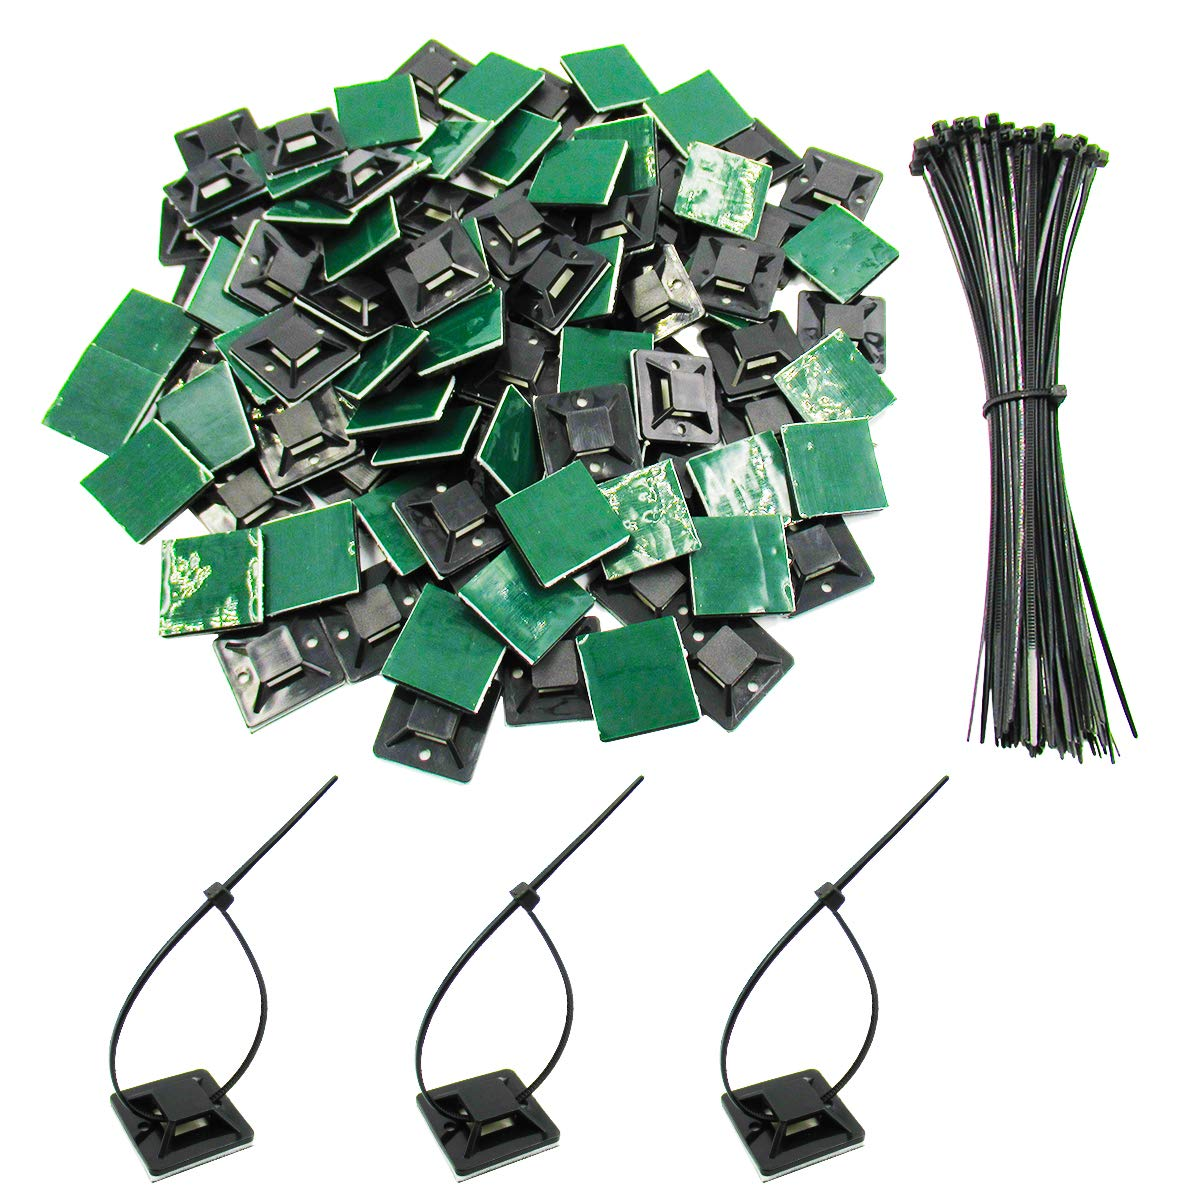 100 Pack Black Self Adhesive Cable Tie Mounts 1'x1' with 100 Pack Zip Ties for Secure Wires by V-Story